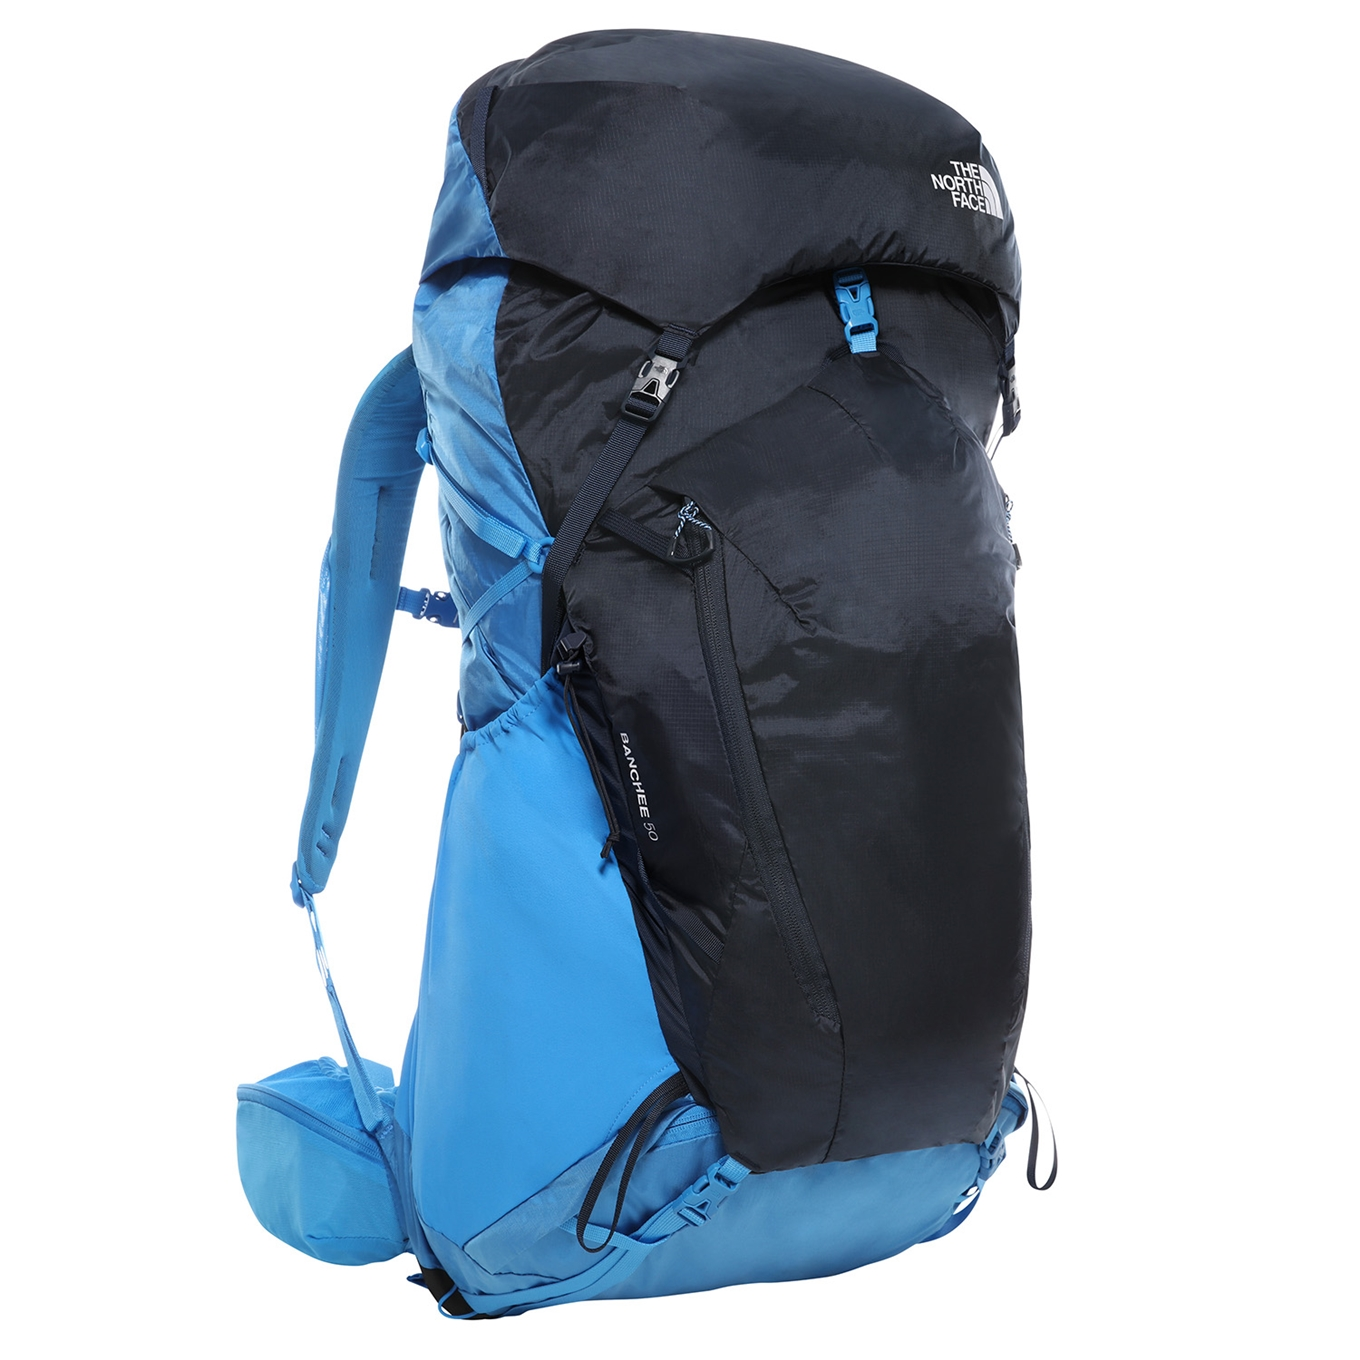 The North Face Banchee 50 Backpack L XL clear lake blue / urban navy backpack <br/></noscript><img class=